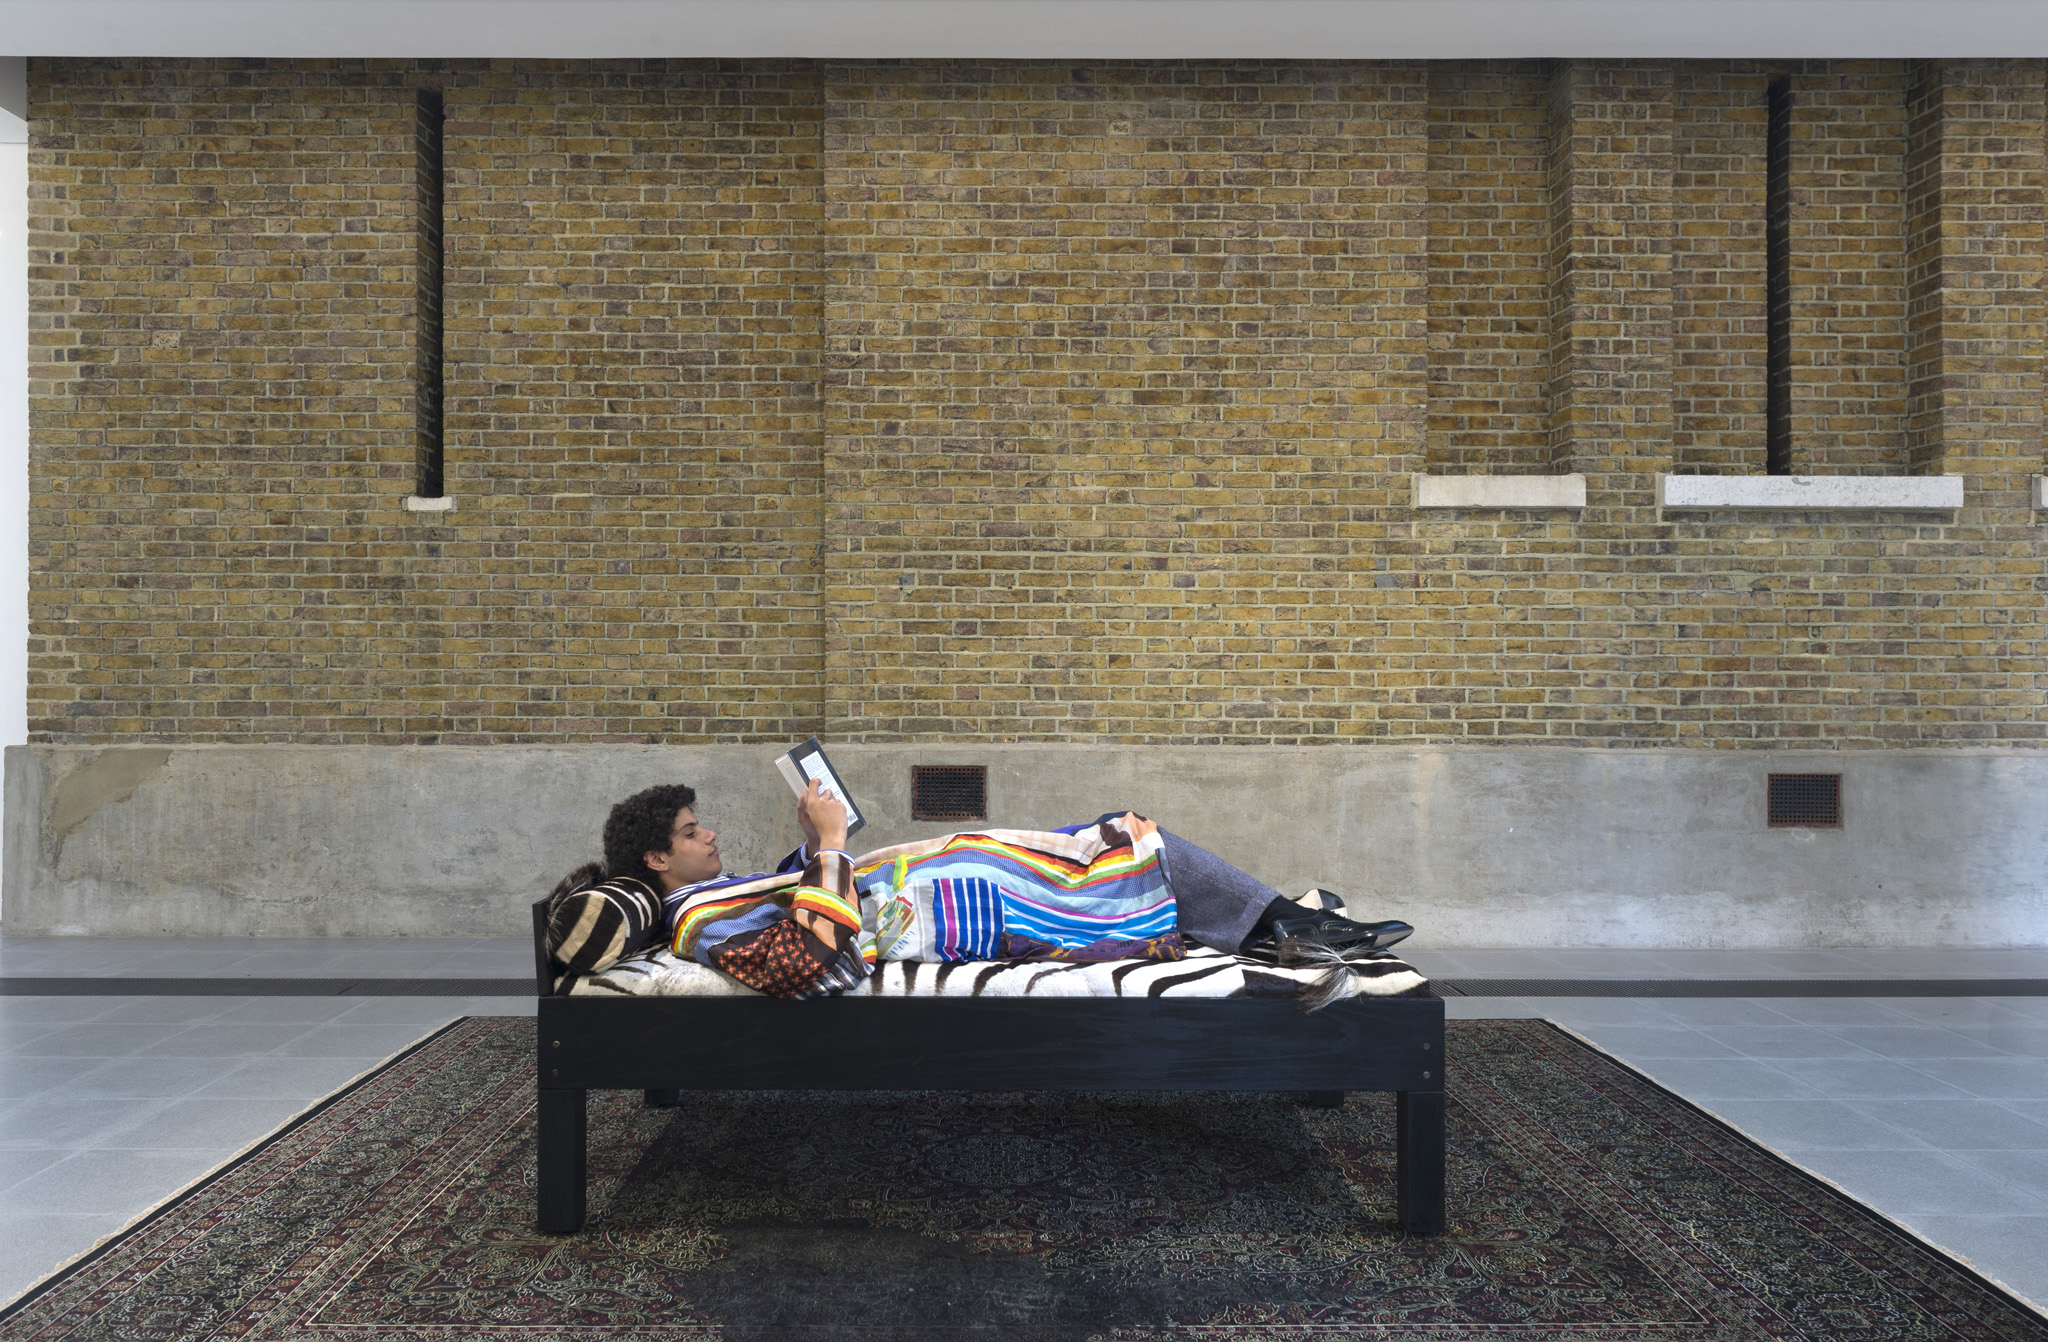 Rashid Johnson, Untitled (daybed 1) 2012, Grace Wales Bonner: A Time for New Dreams. (Installation view, 18 January – 16 February 2019, Serpentine Galleries). © 2019 readsreads.info